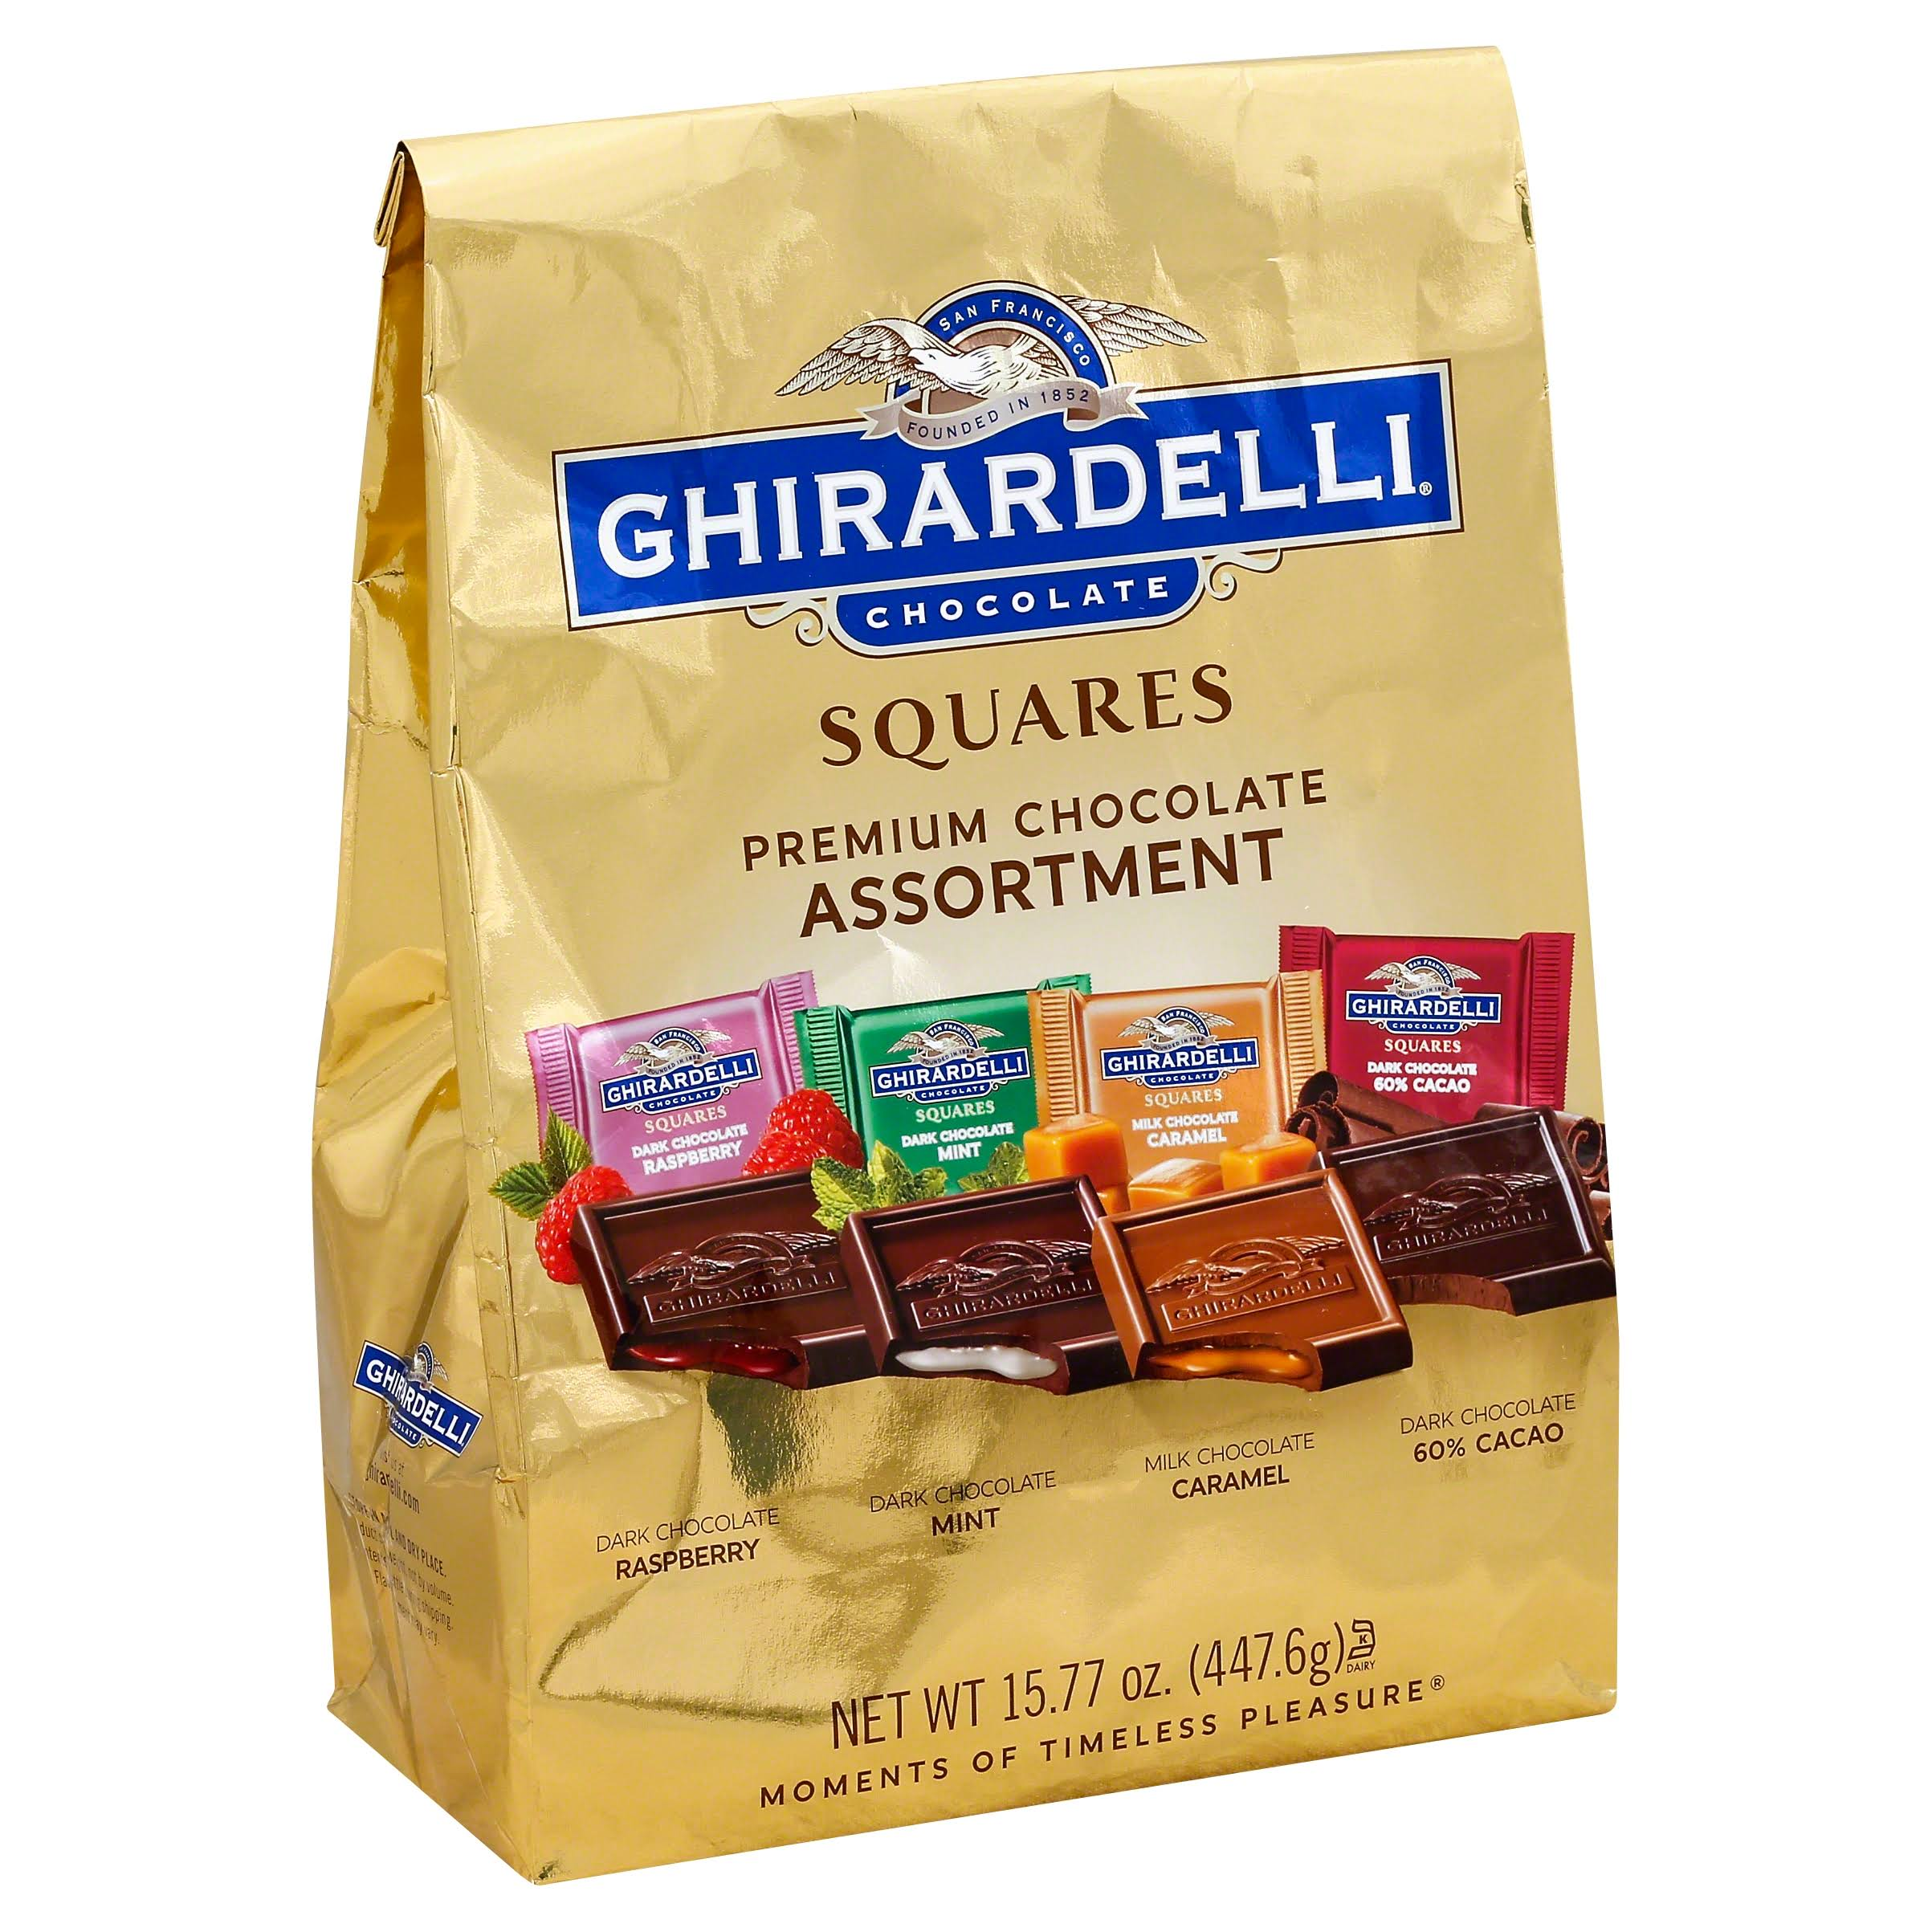 Ghirardelli Chocolate Squares Assortment - 447.6g